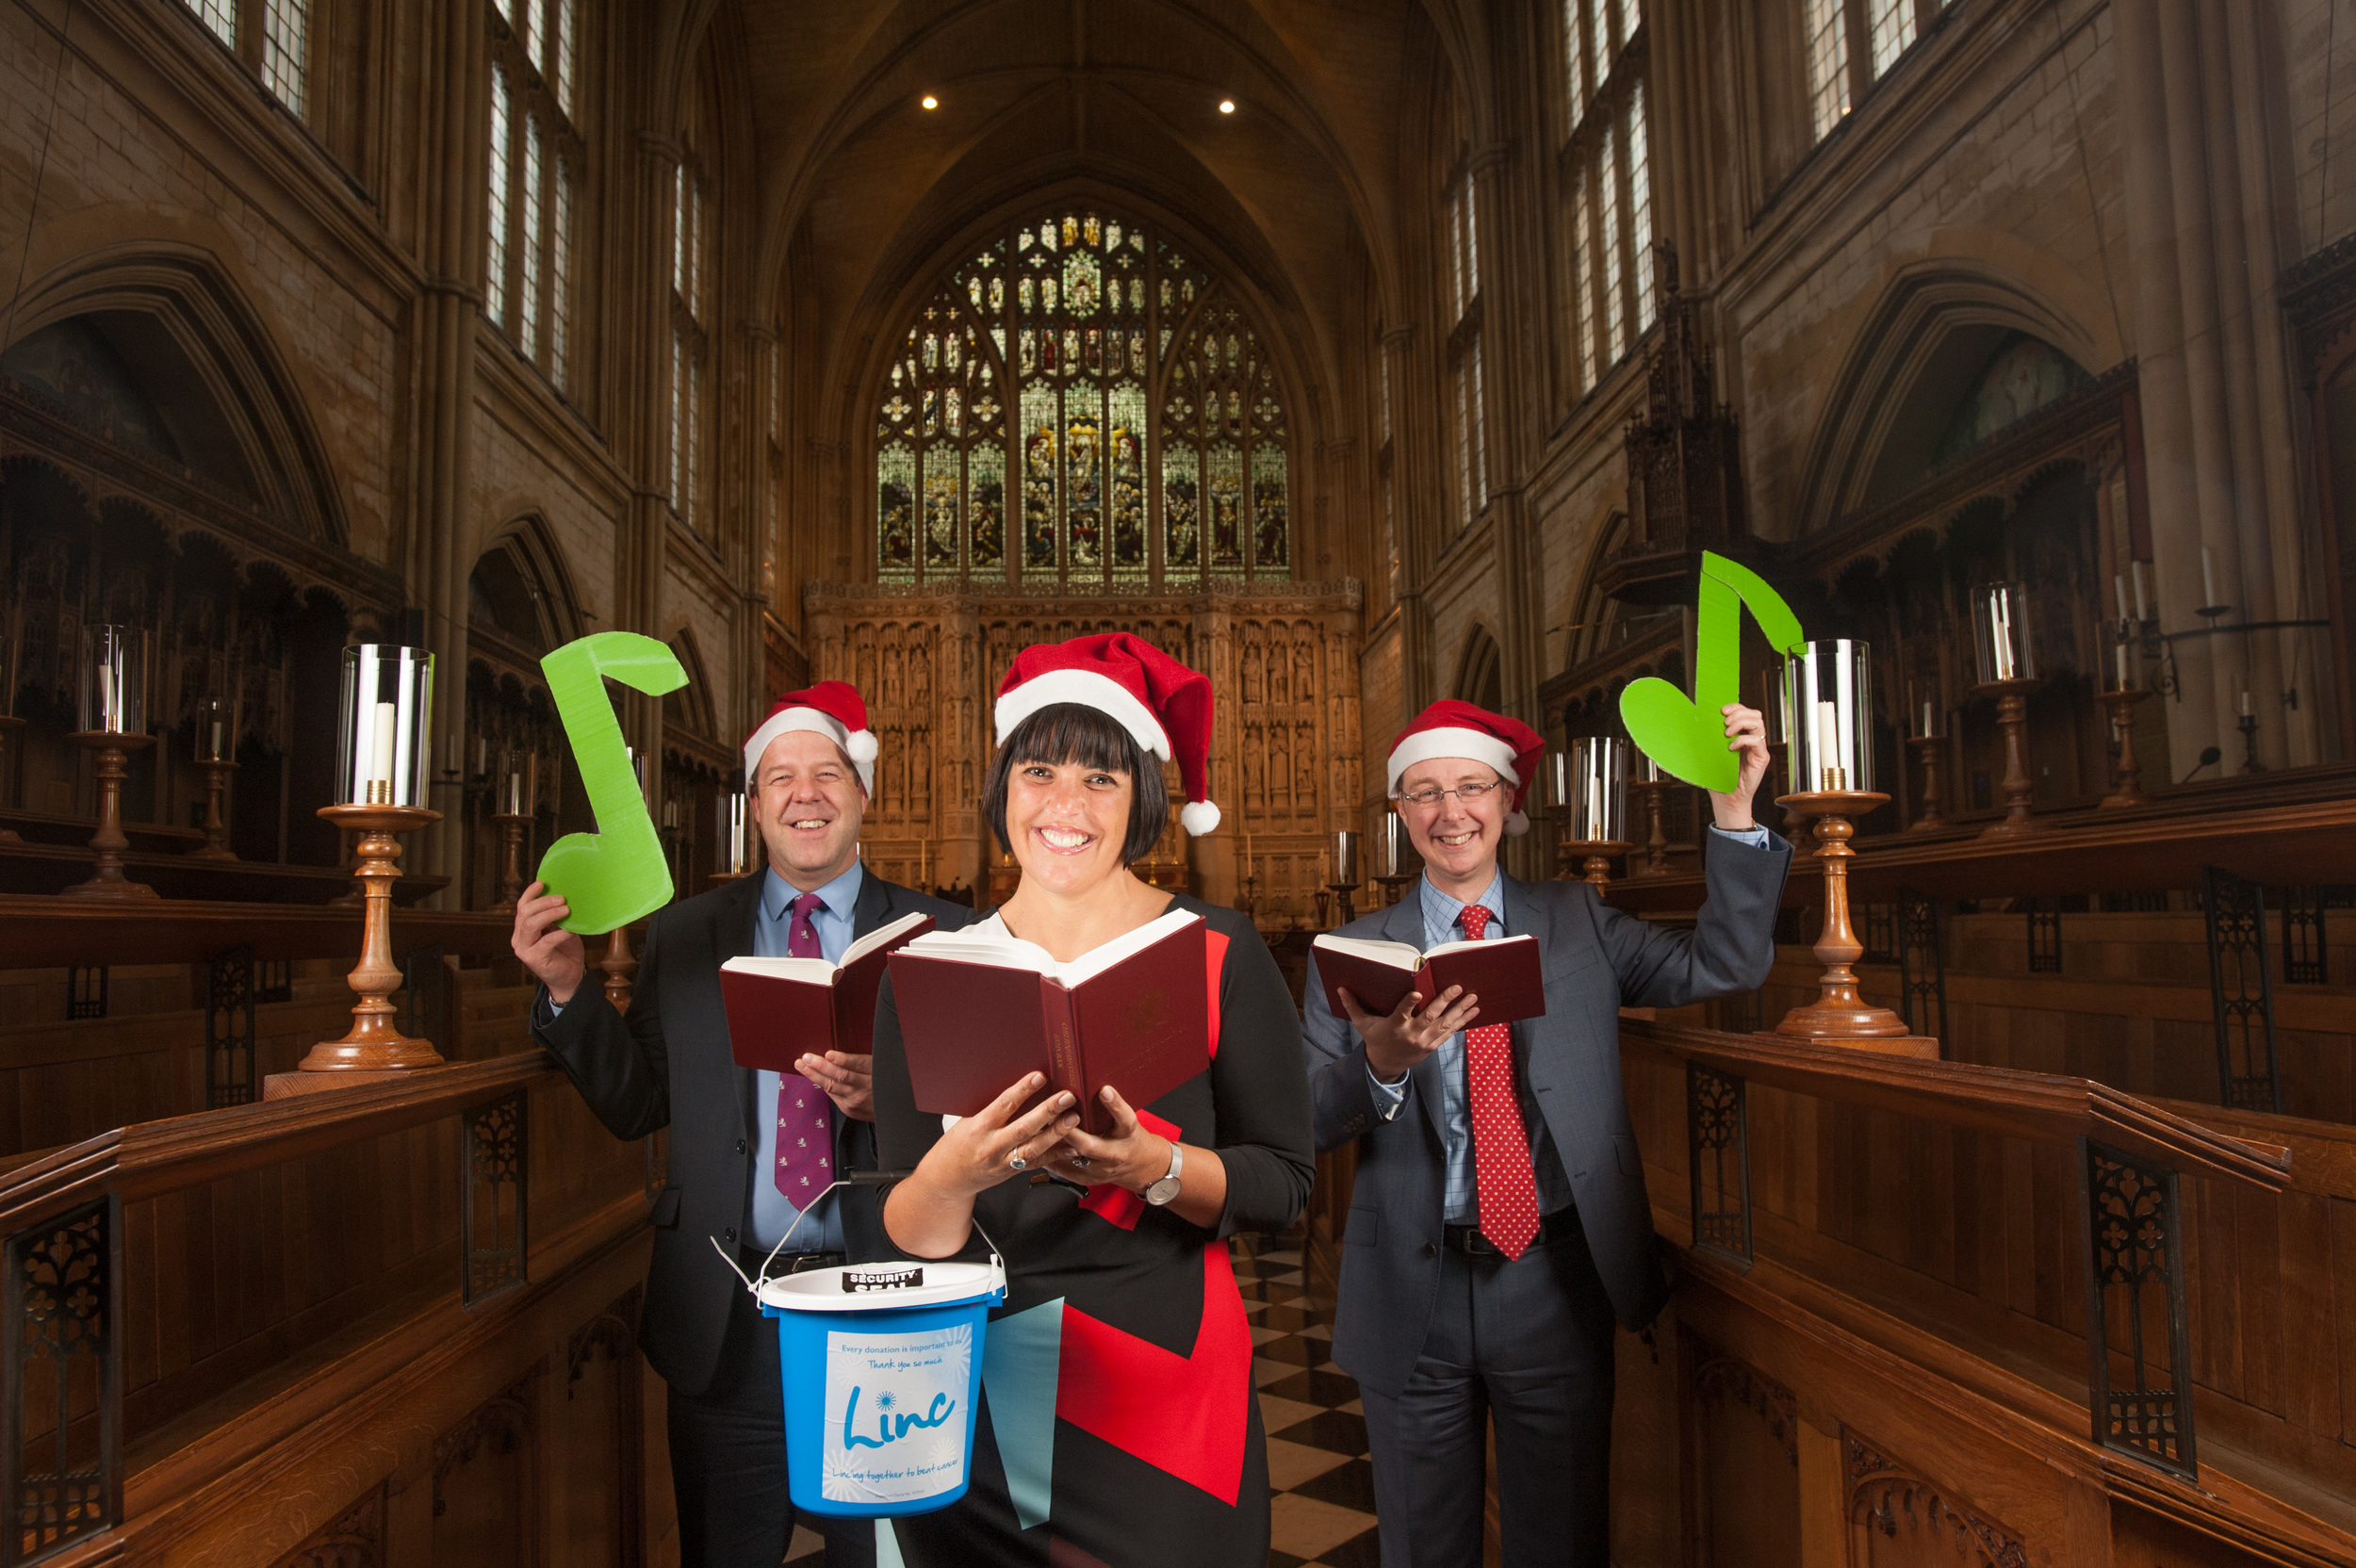 The main lighting was a couple of umbrella flashes either side of the people and a small remote controlled flash hidden in the hymn book to light up the lady in the middle.